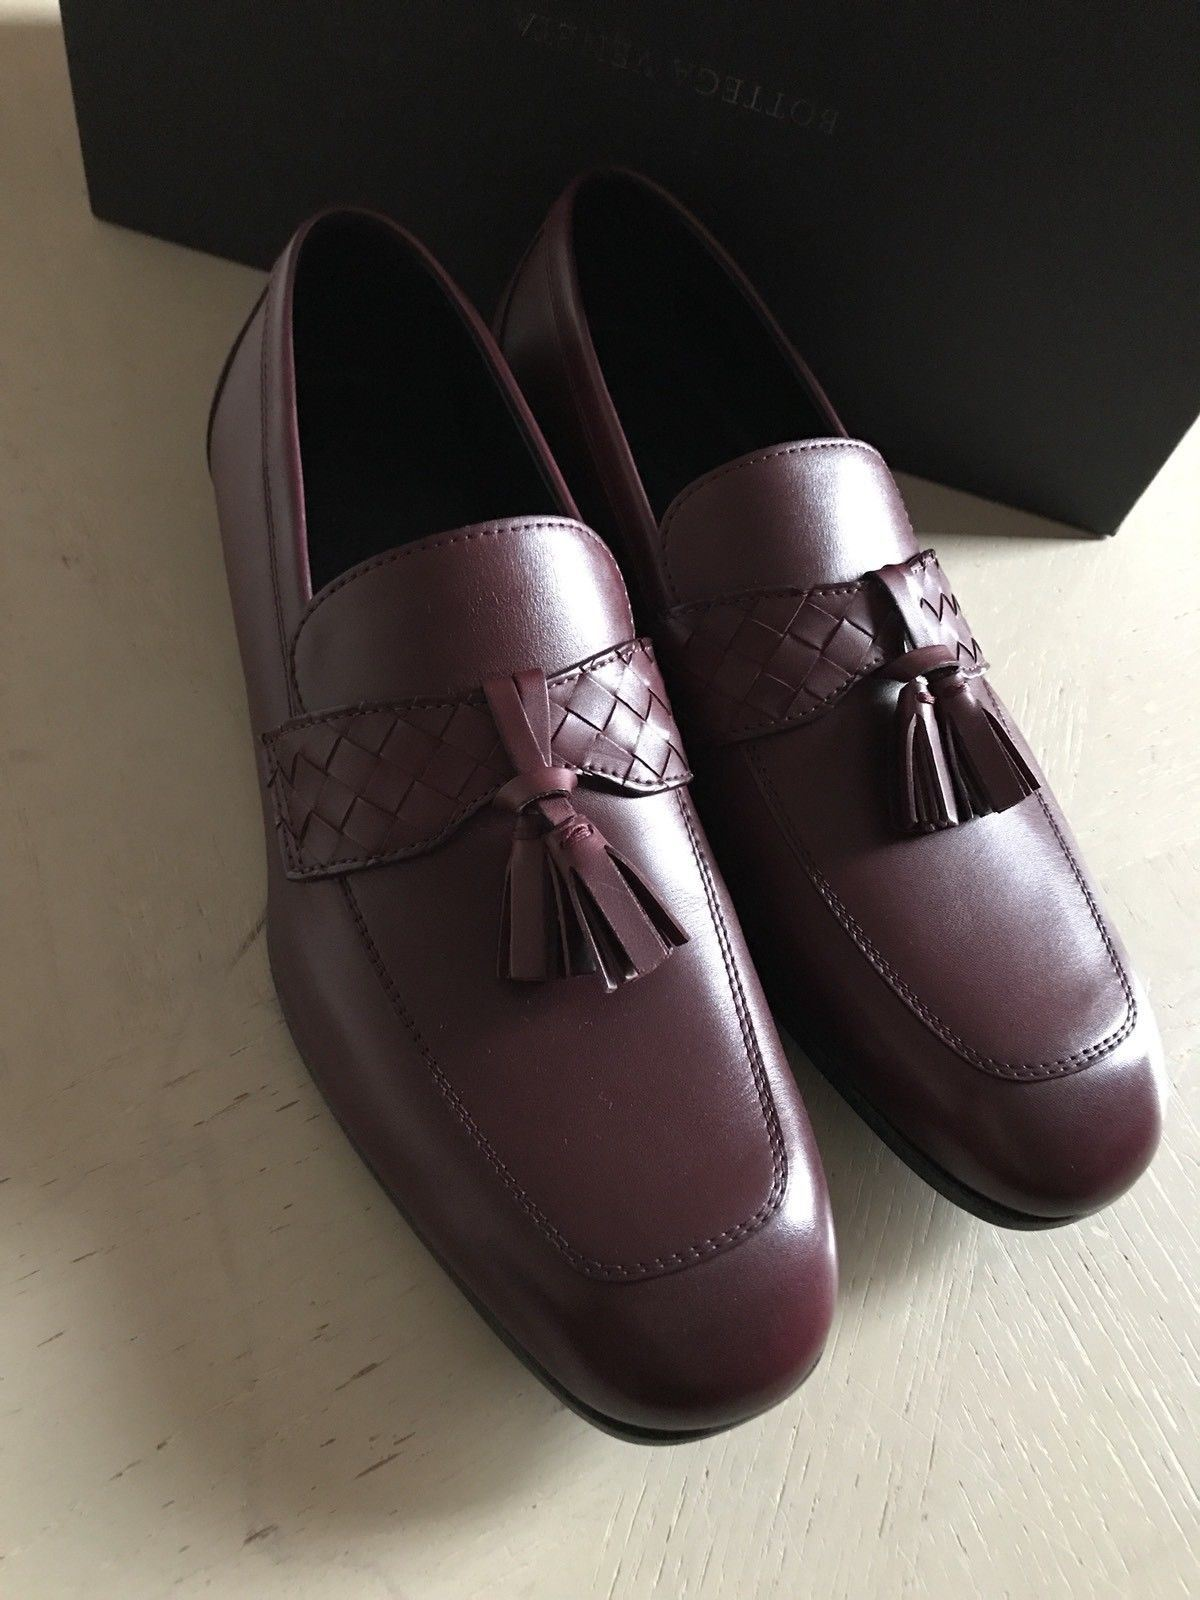 NIB $990 Bottega Veneta Mens Leather Shoes Brown/Burgundy 8 US ( 41 Eu ) - BAYSUPERSTORE